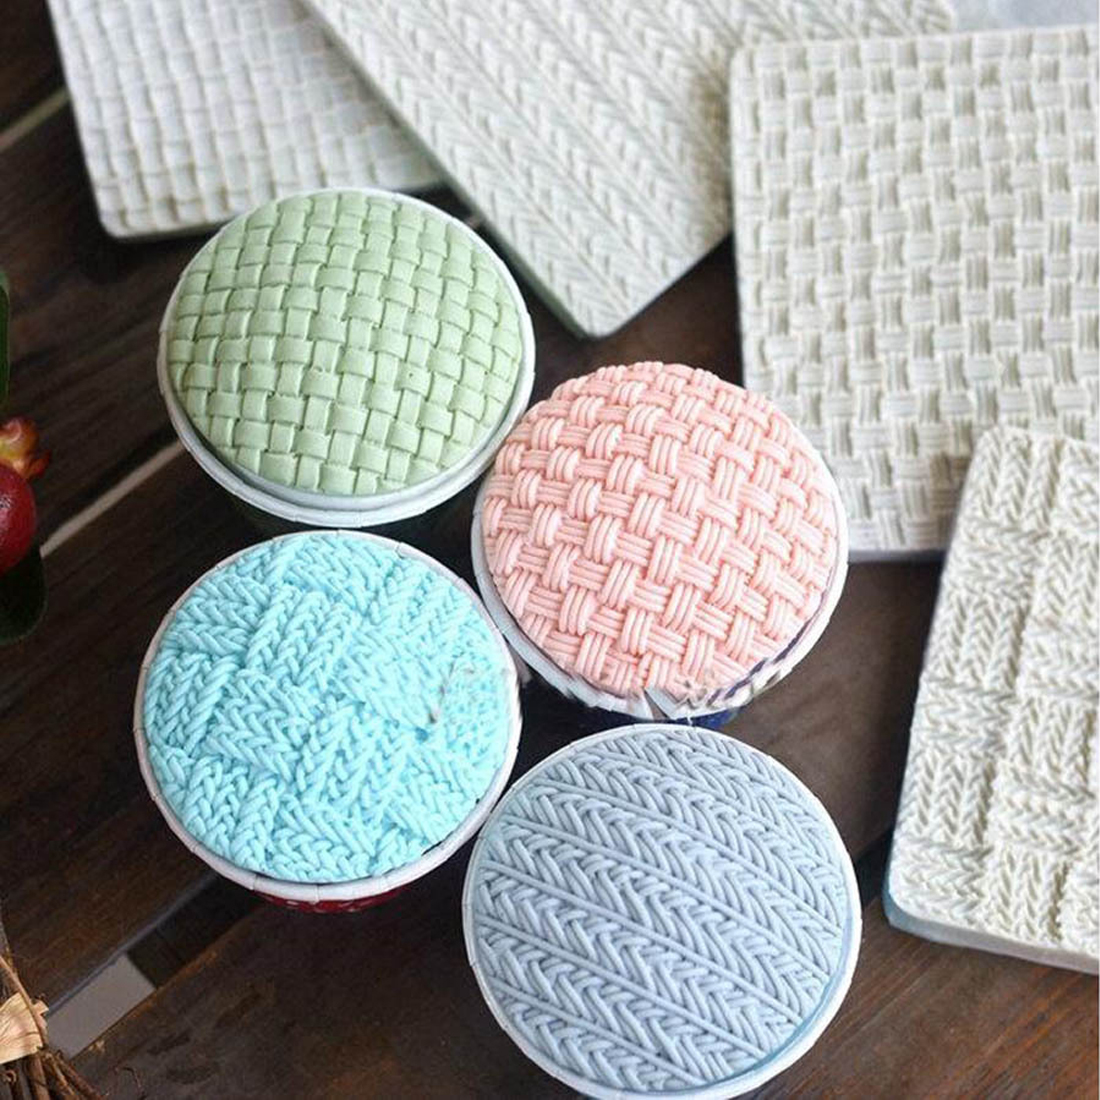 Hot Sale Sweater Woolen Grain Silicone Cake Mold Chocolate Jelly Baking Mould Sugar Craft Tools Fondant Cake Decorating